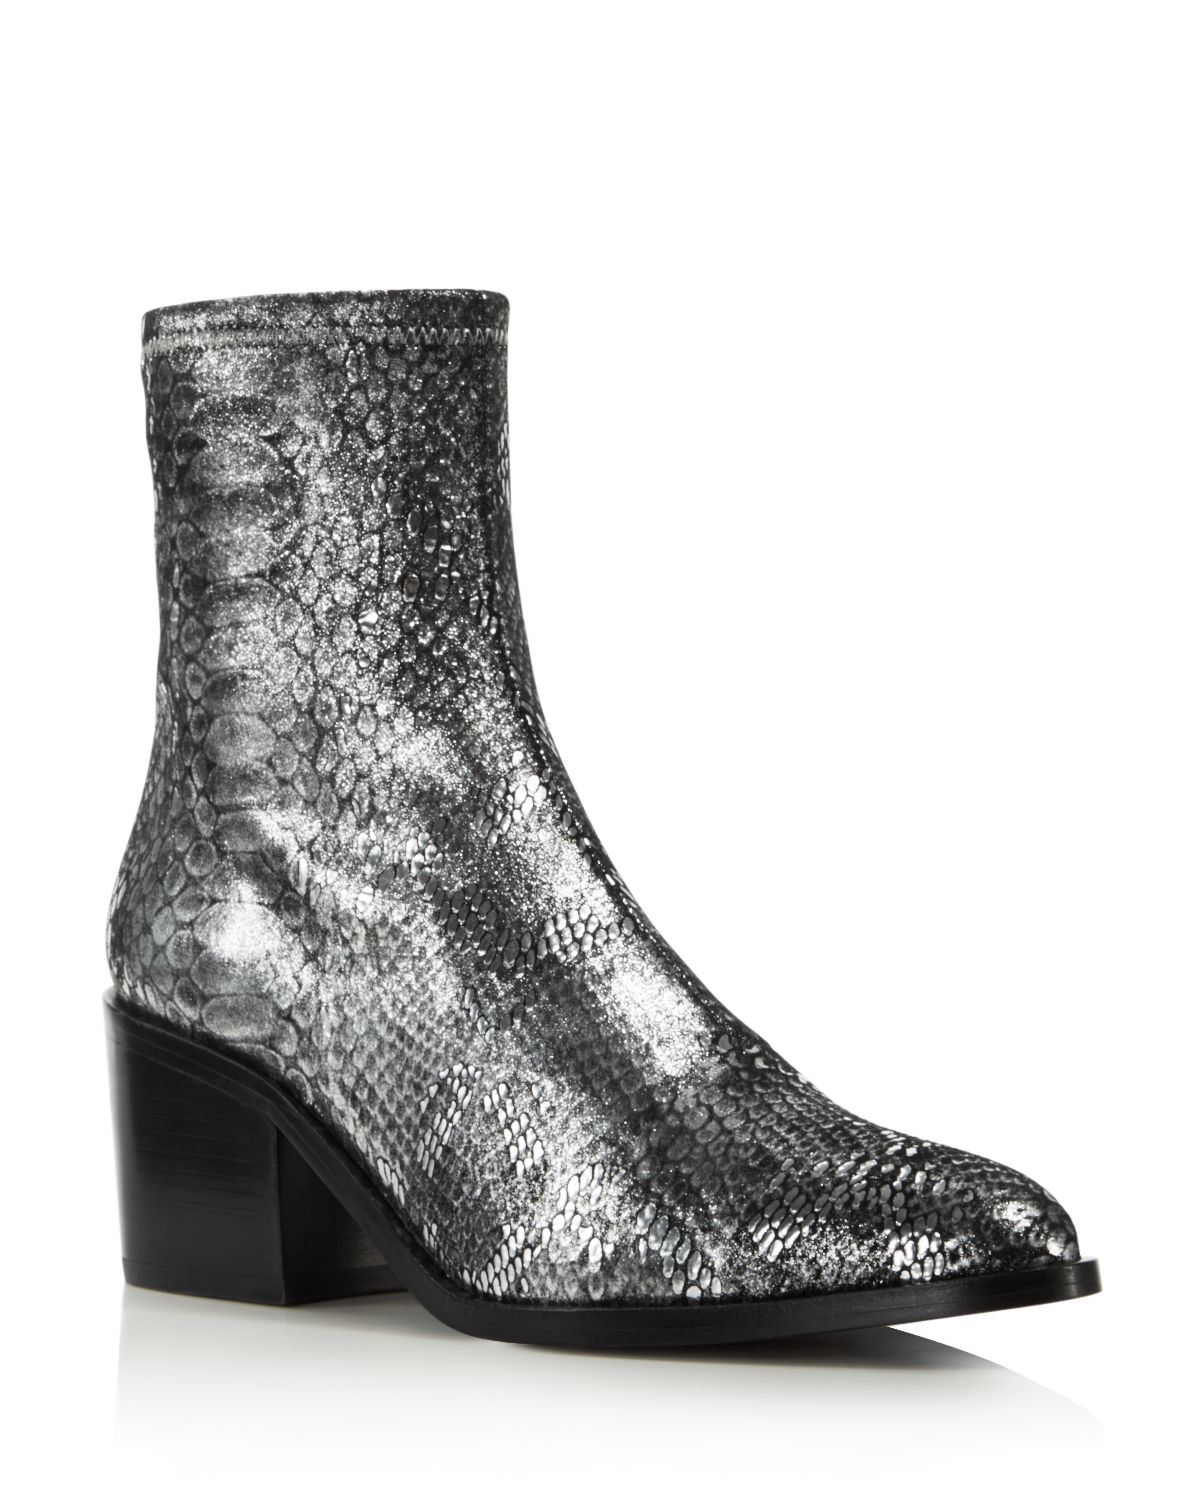 Opening Ceremony Women's Livv Metallic Snake-Embossed Leather Booties